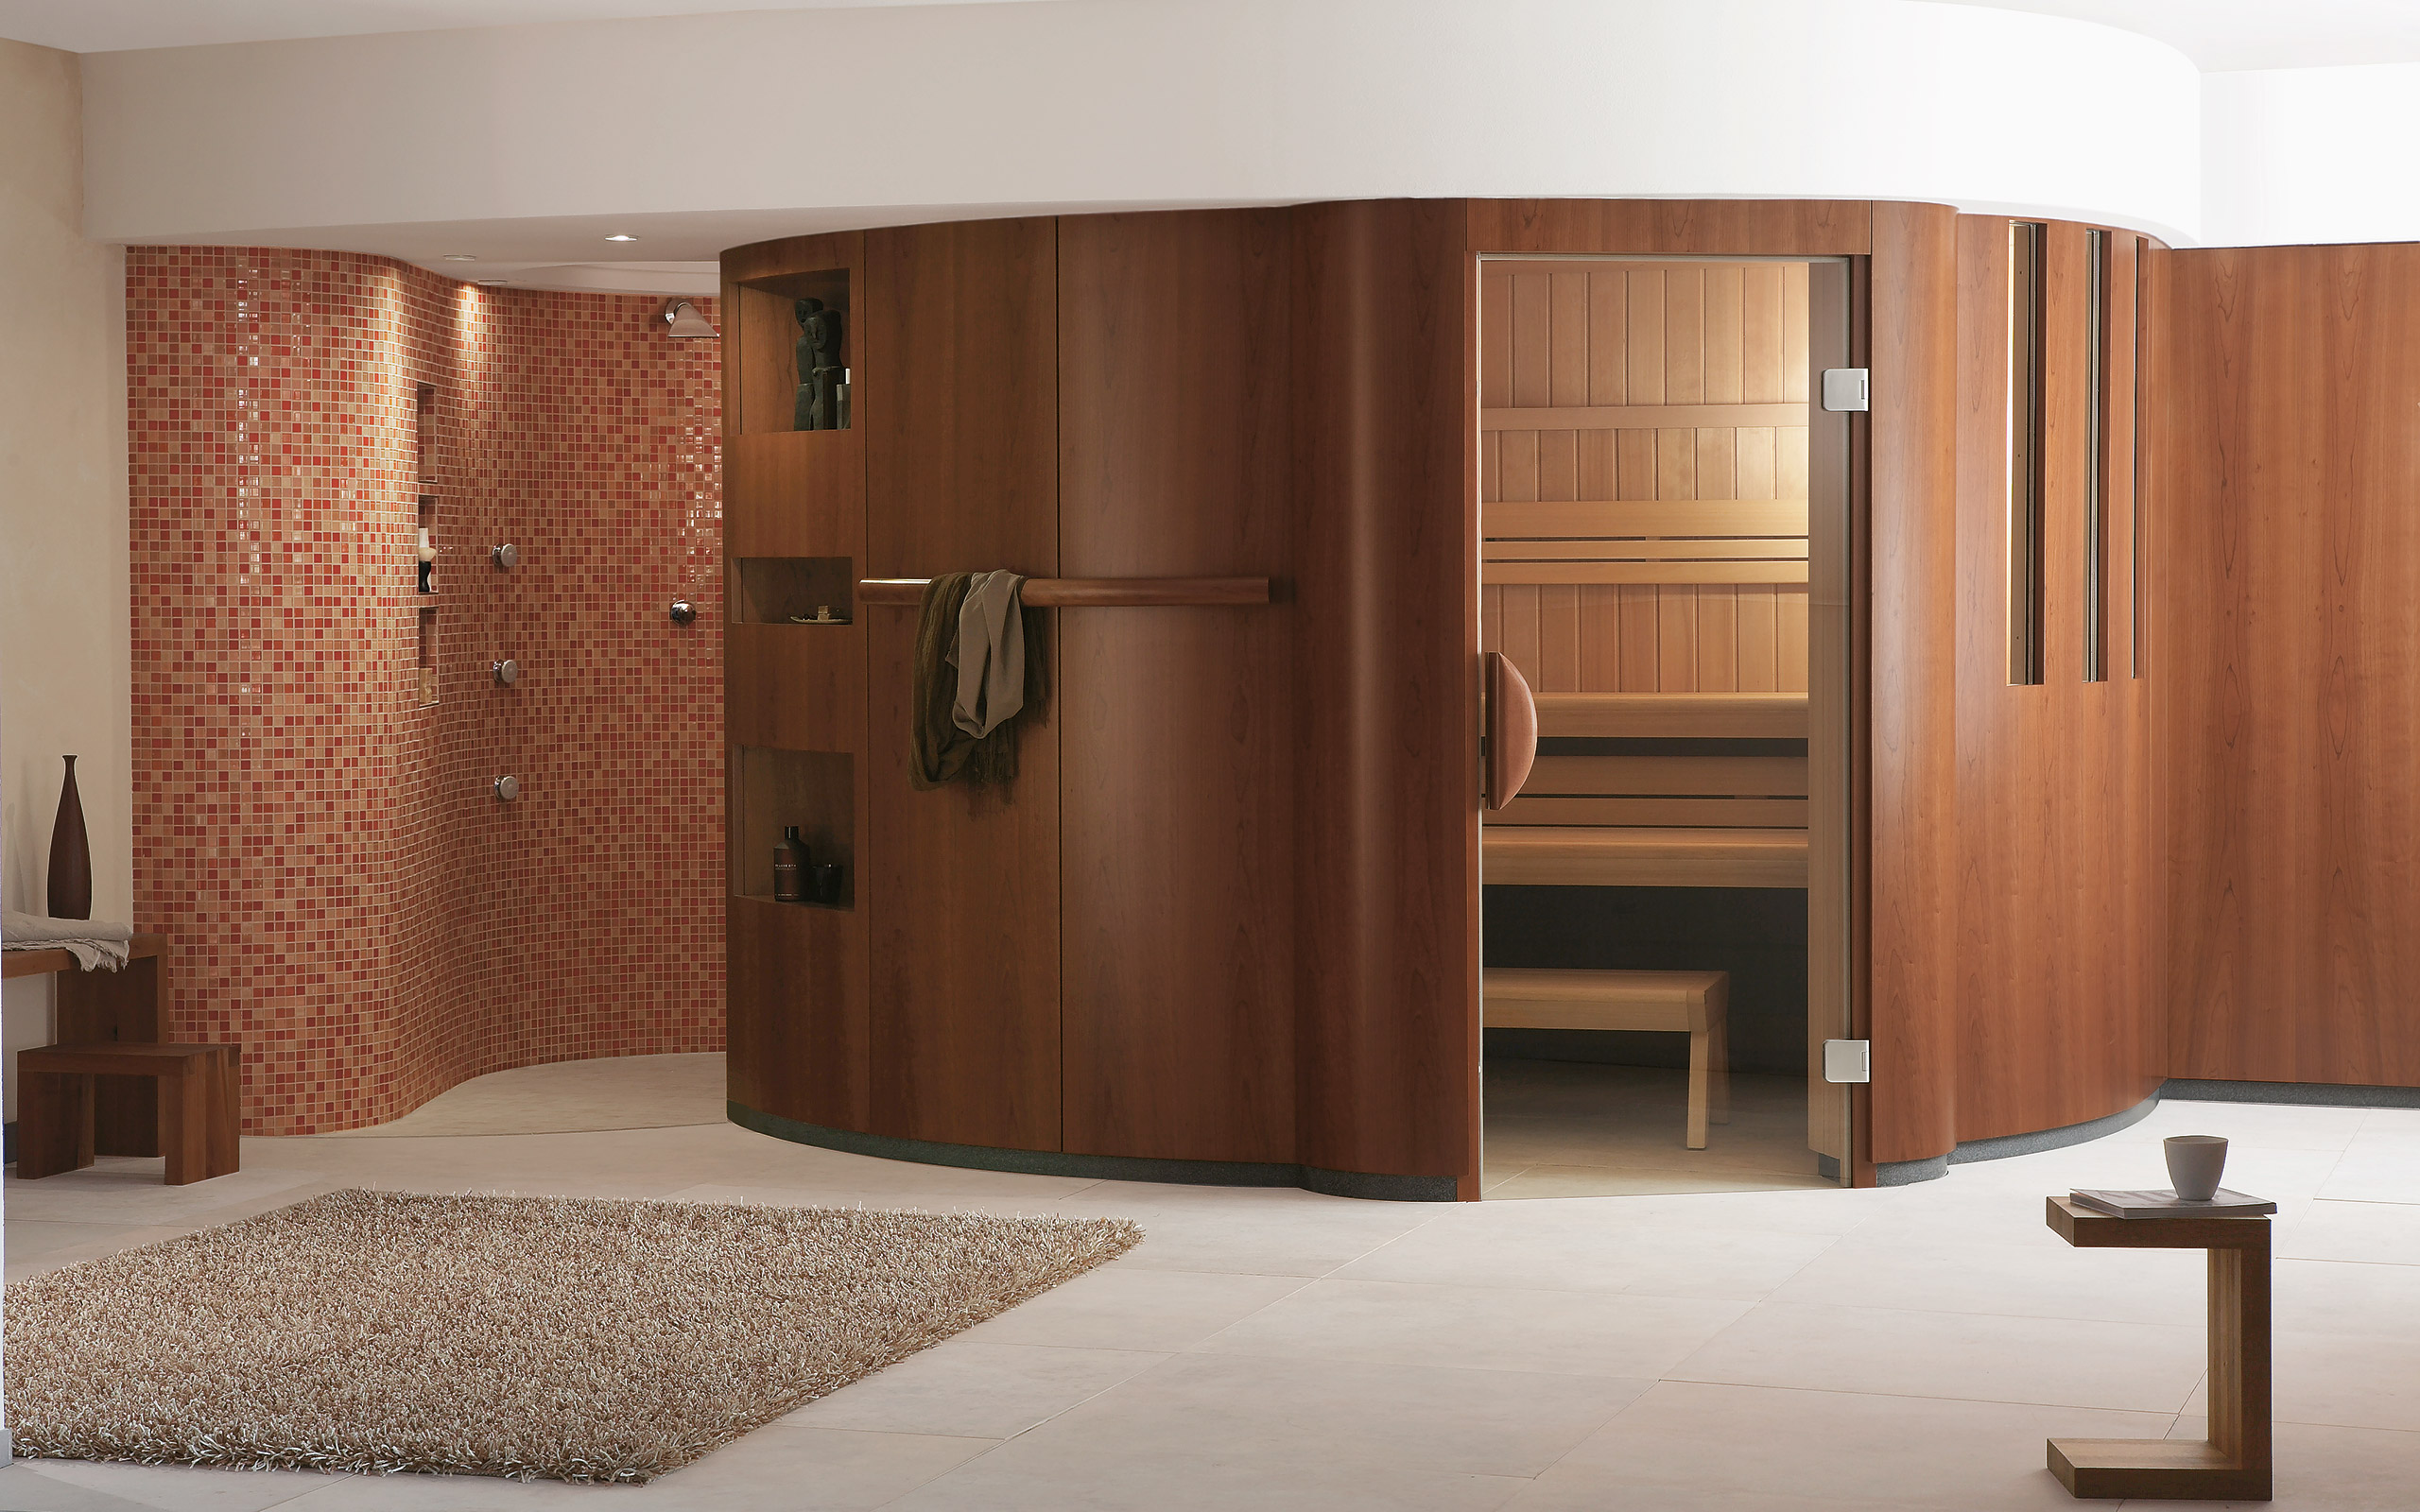 sauna showroom schw bisch hall in house of sauna spa. Black Bedroom Furniture Sets. Home Design Ideas